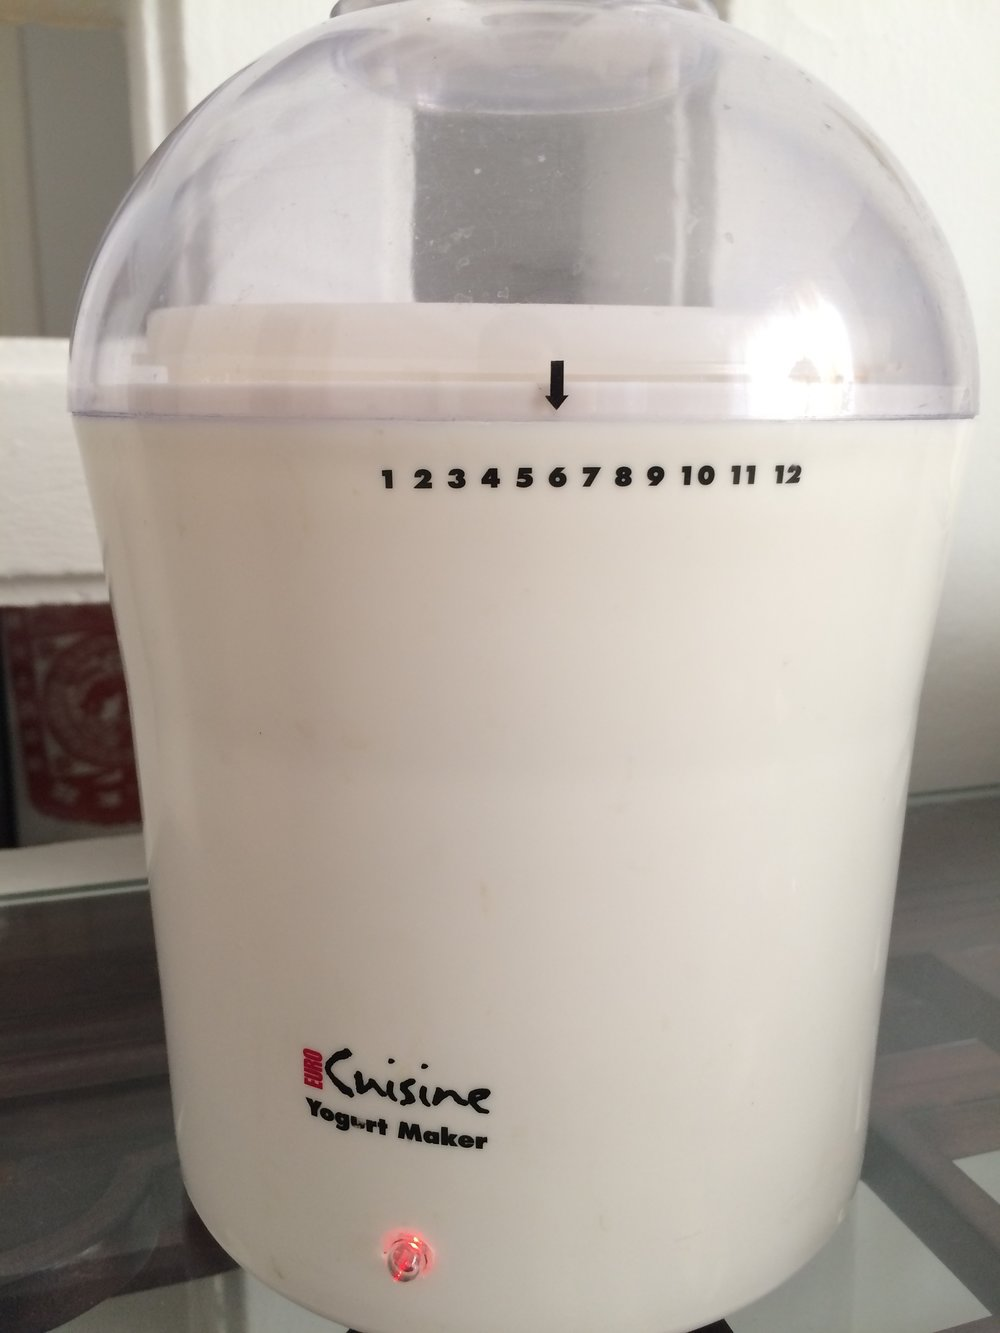 My 2-quart yogurt maker incubates milk at a steady 110 degrees Fahrenheit.